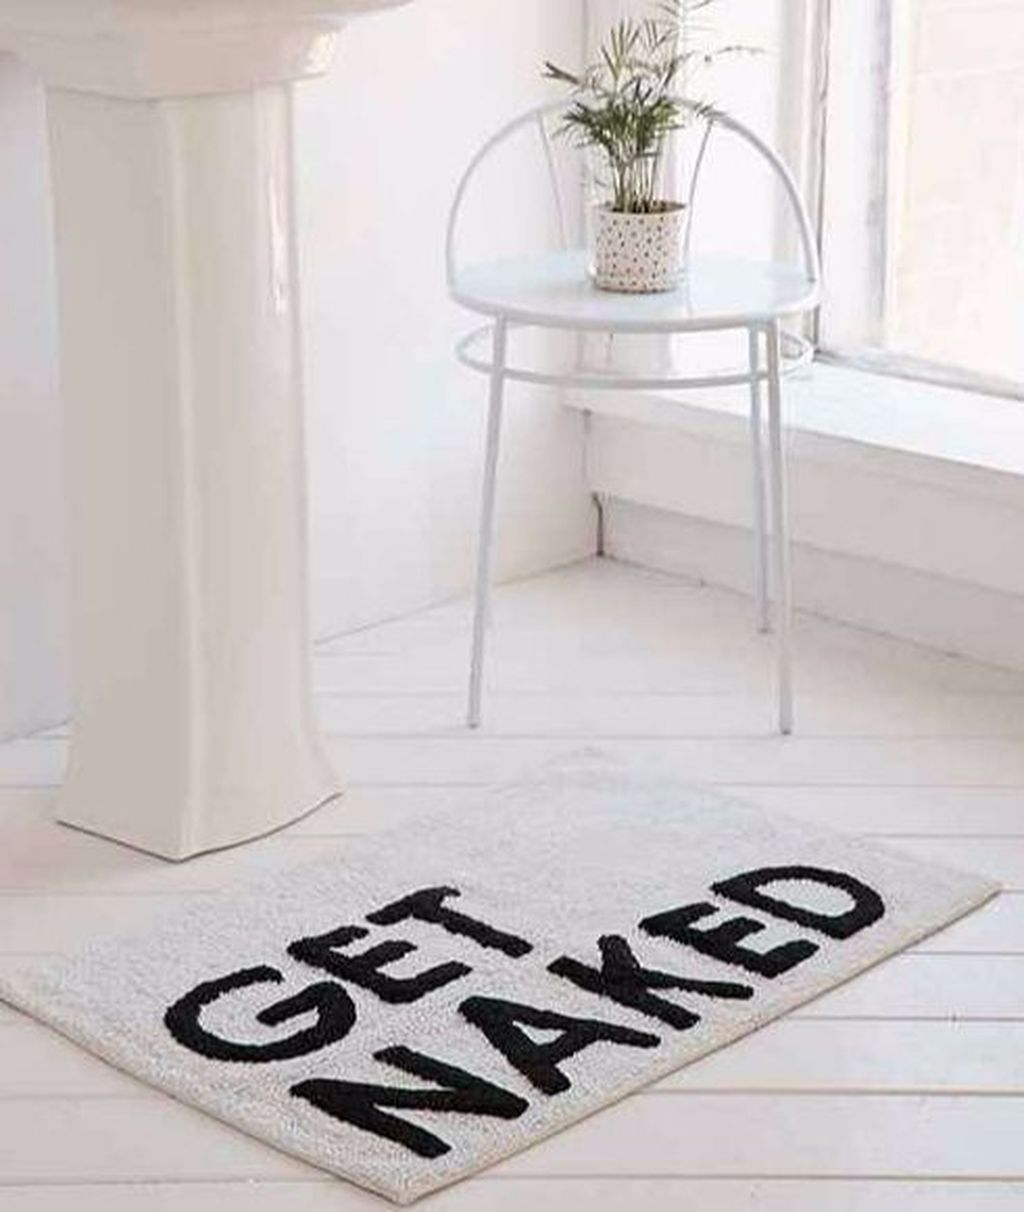 20 Totally Inspiring Bathroom Rug Design To Make It Better Dorm